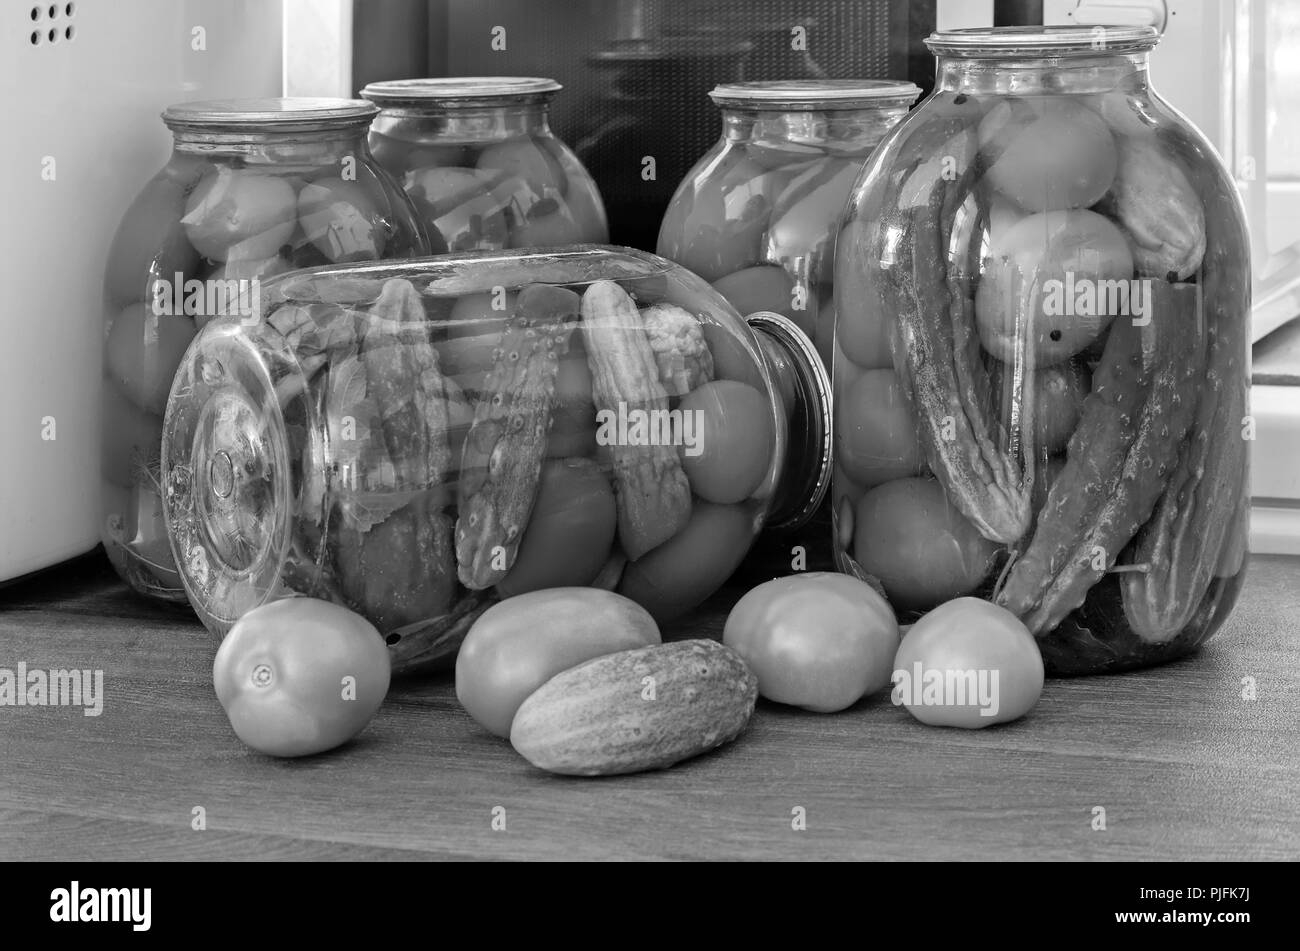 Home preservation: large glass jars with red ripe tomatoes and pickled cucumbers, sealed metallid. Black-and-white image. - Stock Image